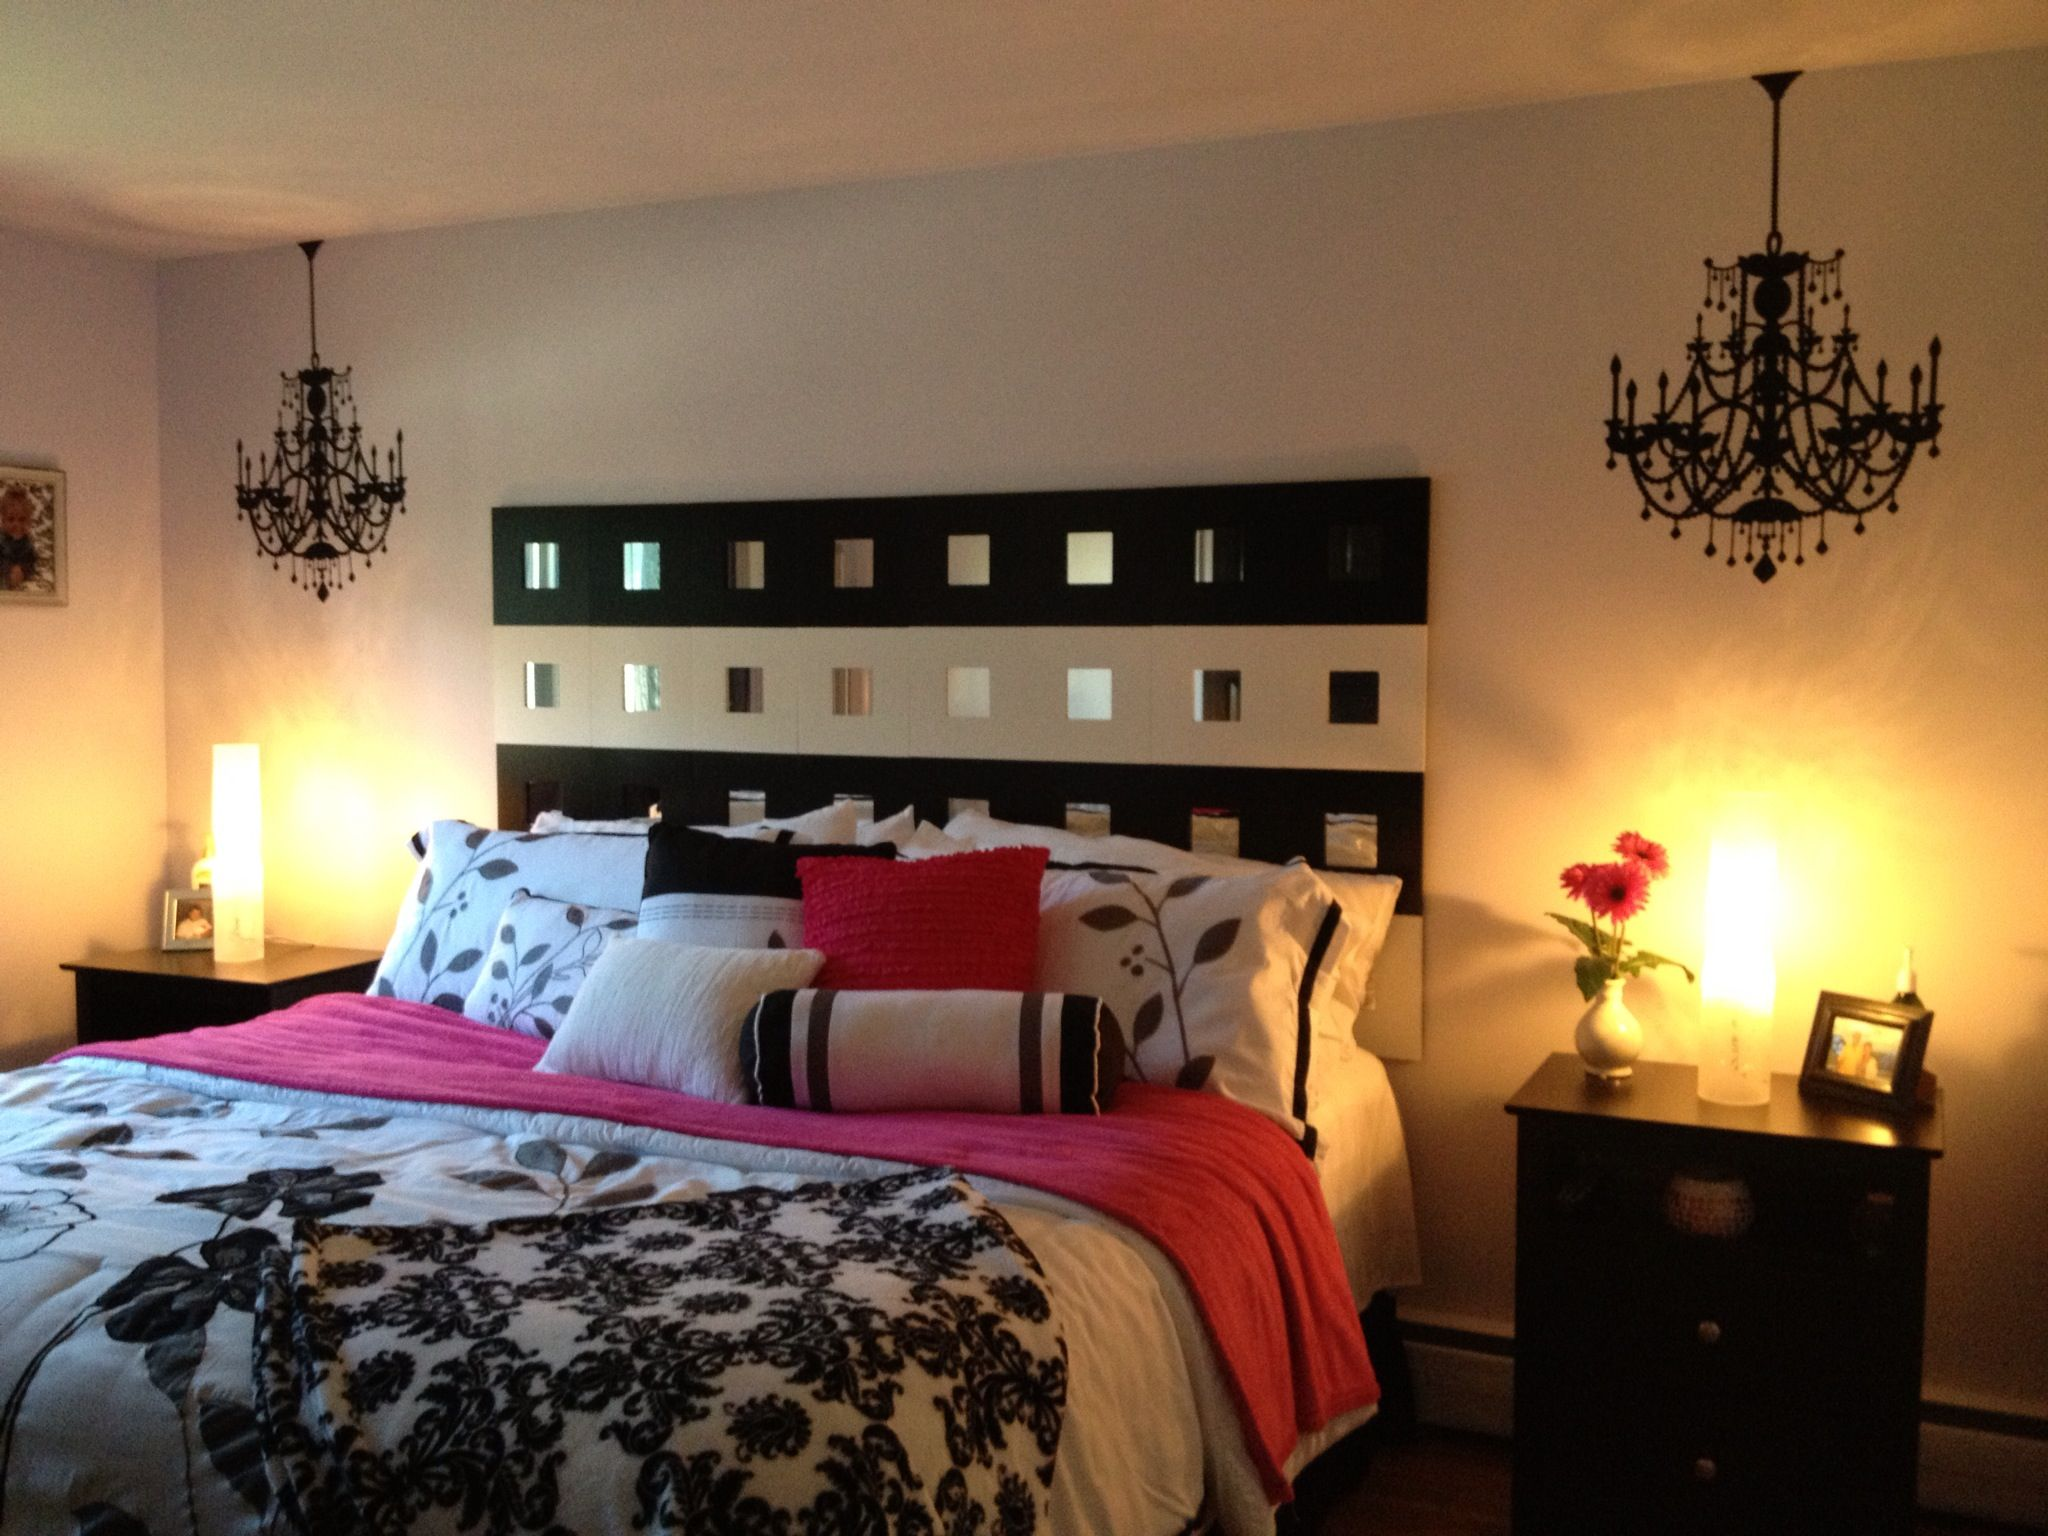 black white hot pink bedroom for the home bedroom 19430 | 17b7a3fdcff80b2377715cc961b1f3b0